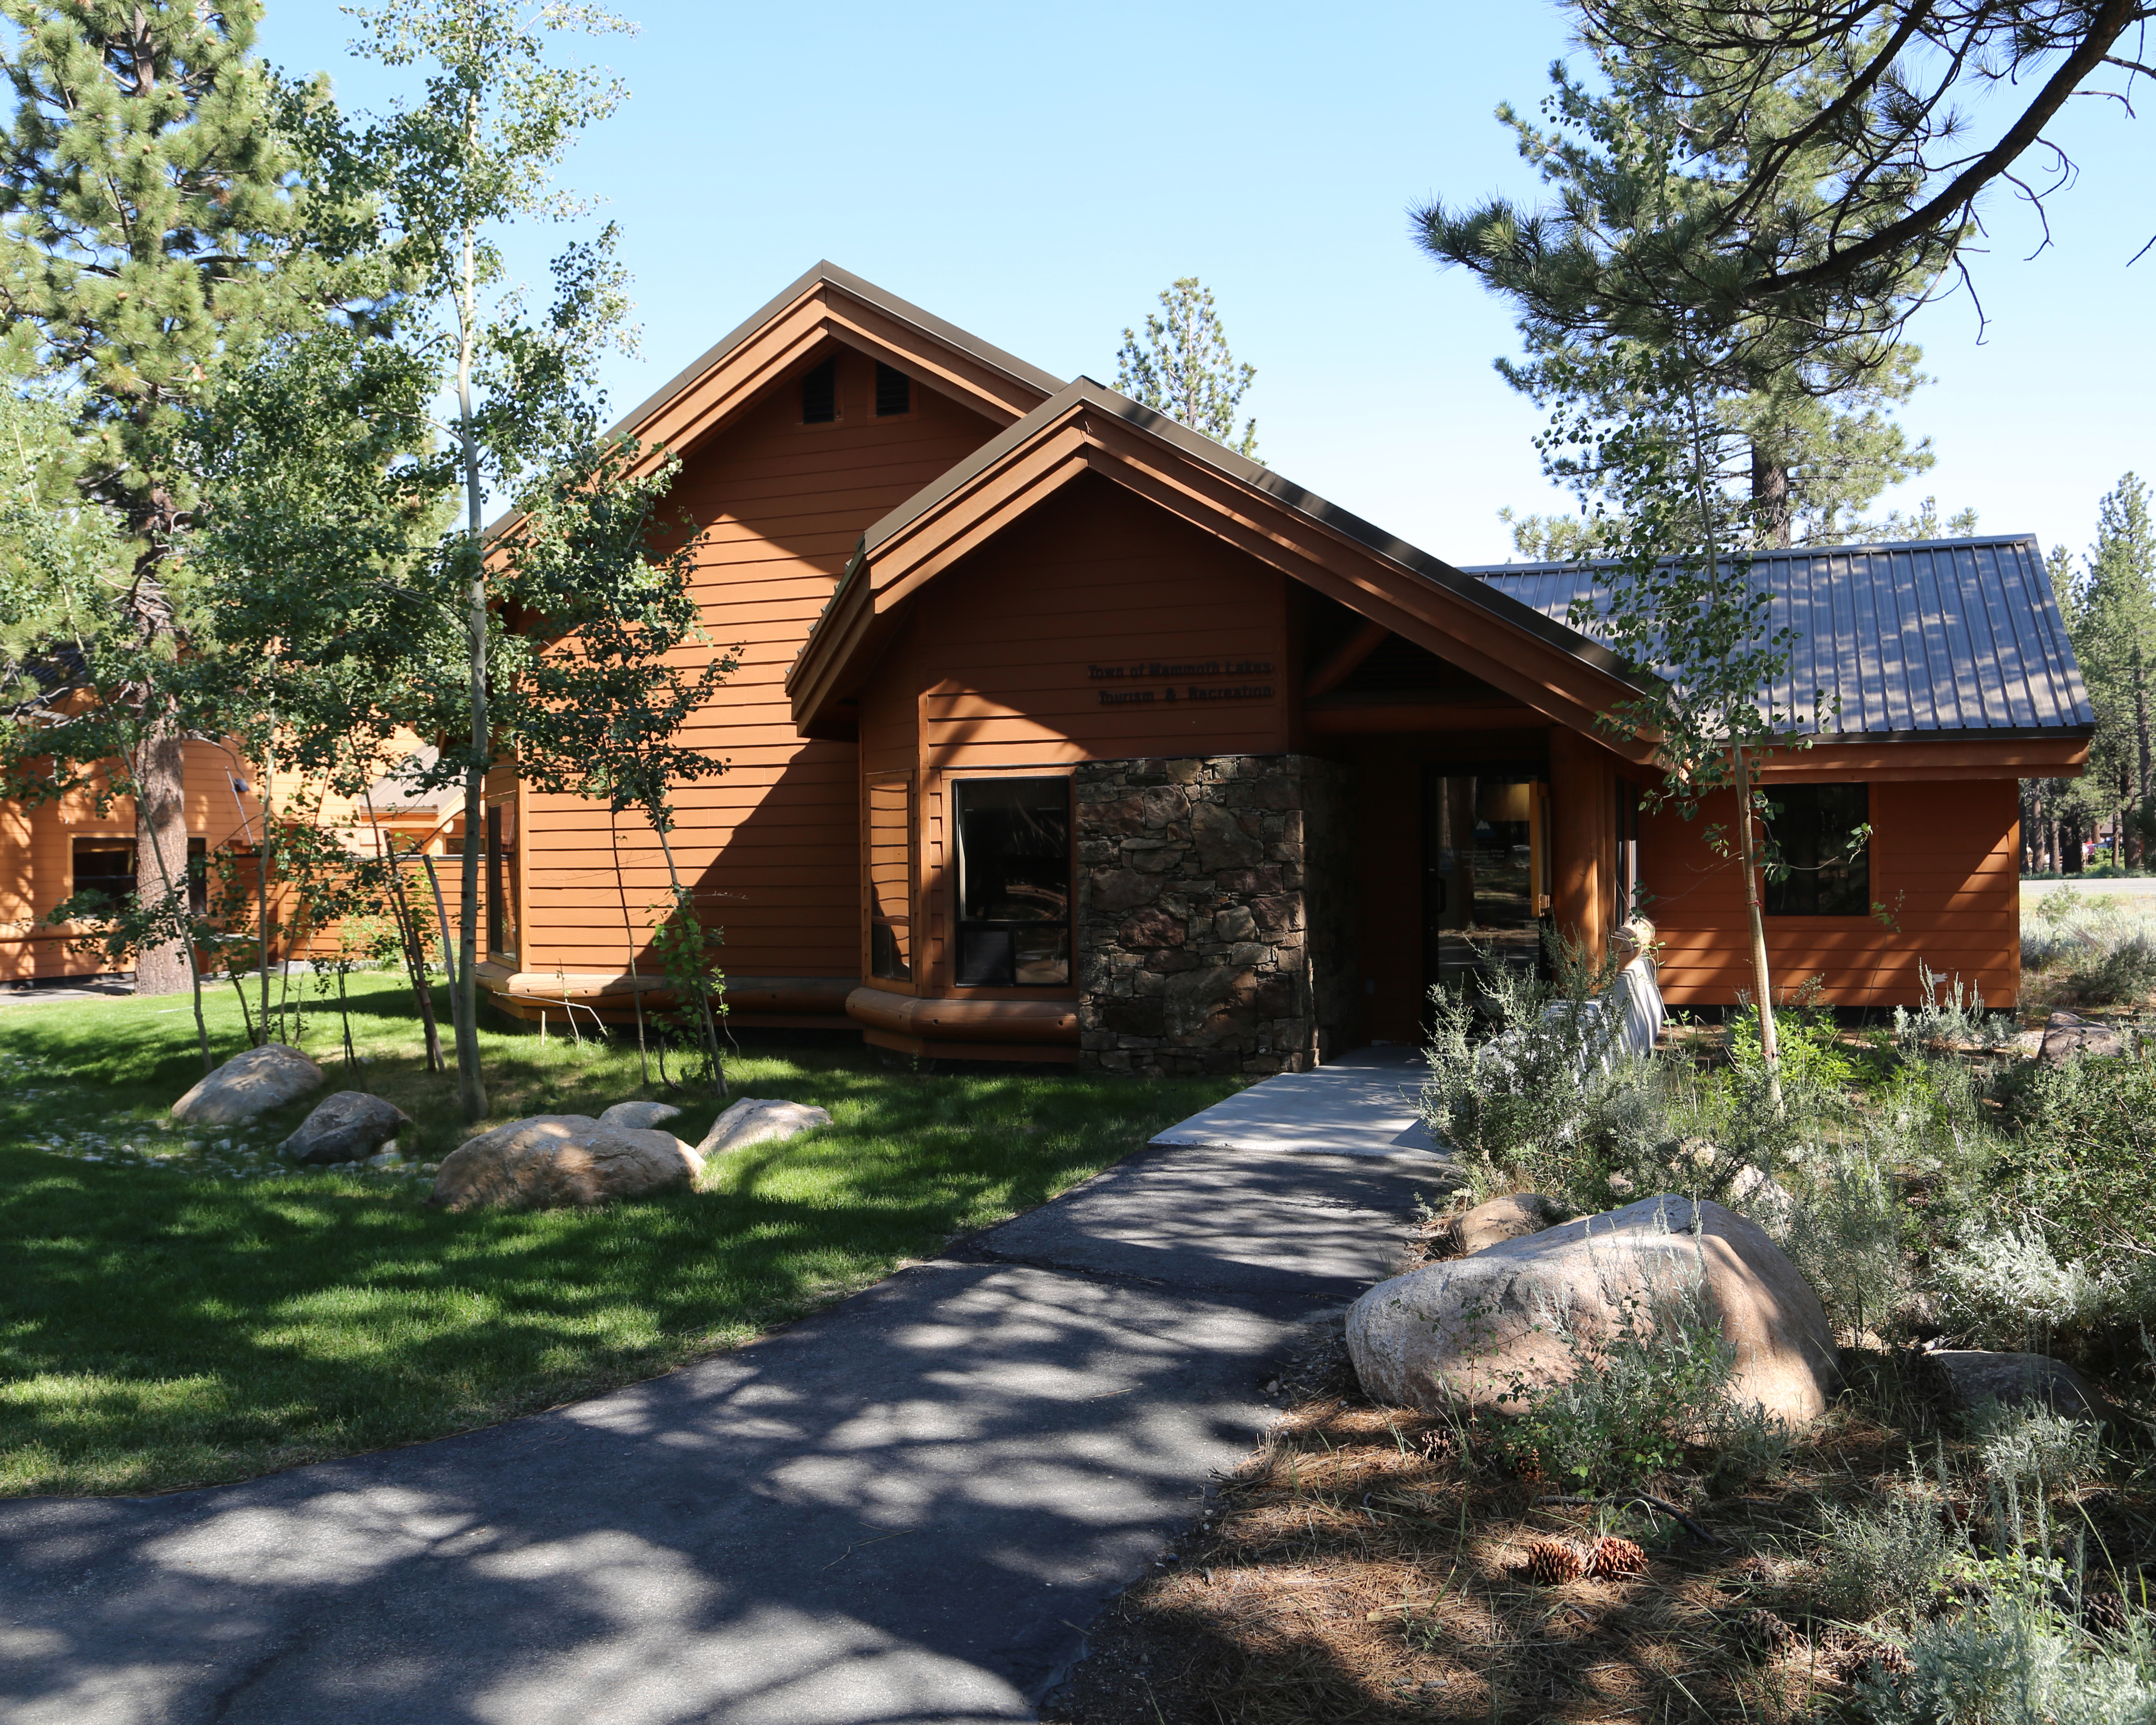 owner condo area cabinrentals by to mammoth fashionable rentals for lake cave lakes cabins frantic al homes cabin log gh outstanding